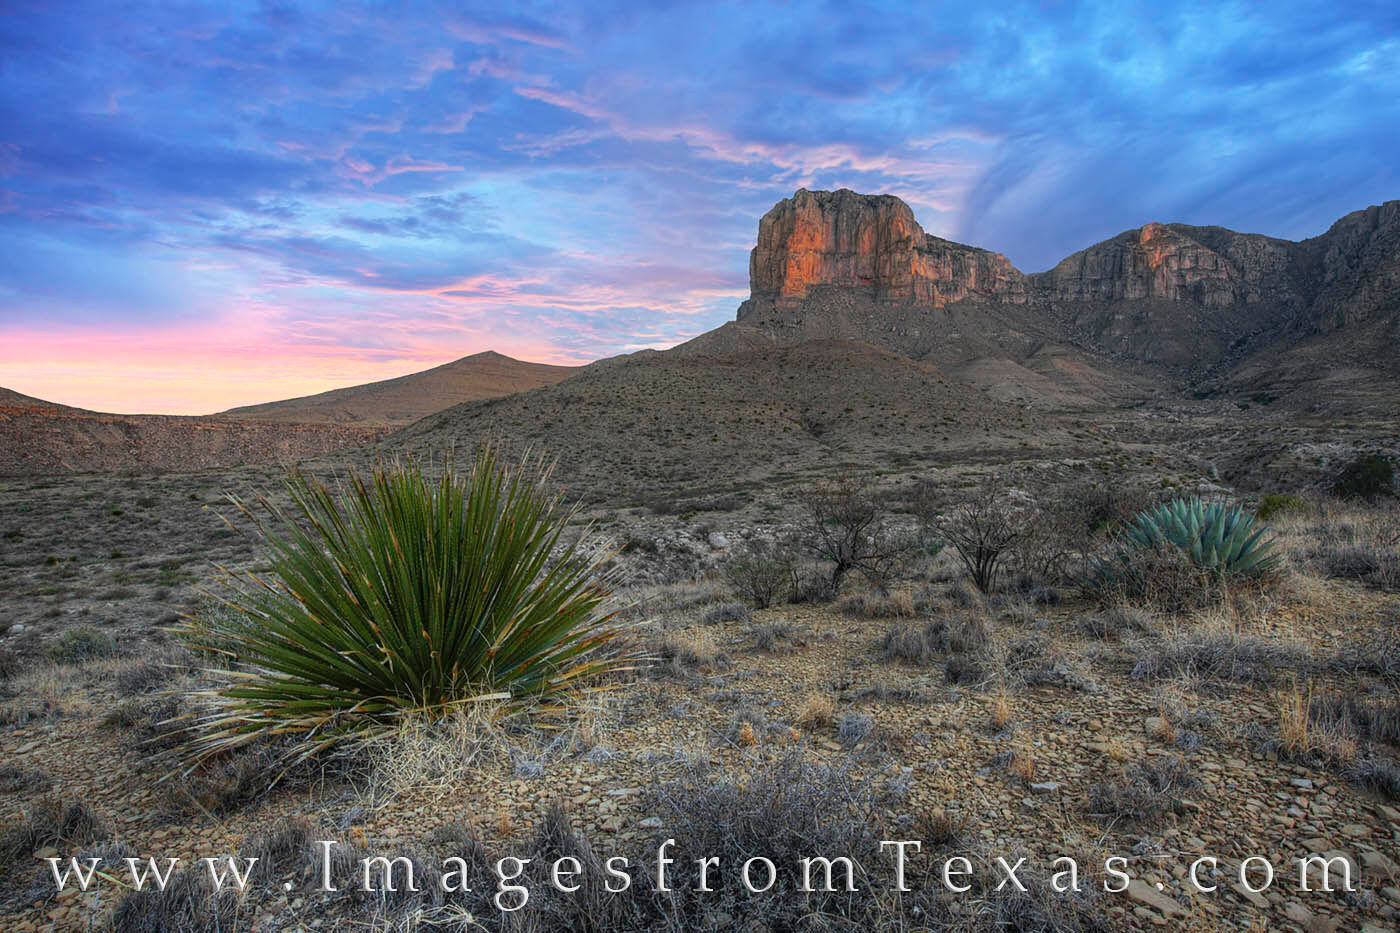 guadalupe mountains,guadalupe mountains national park,texas landscapes,el capitan,images from texas, photo